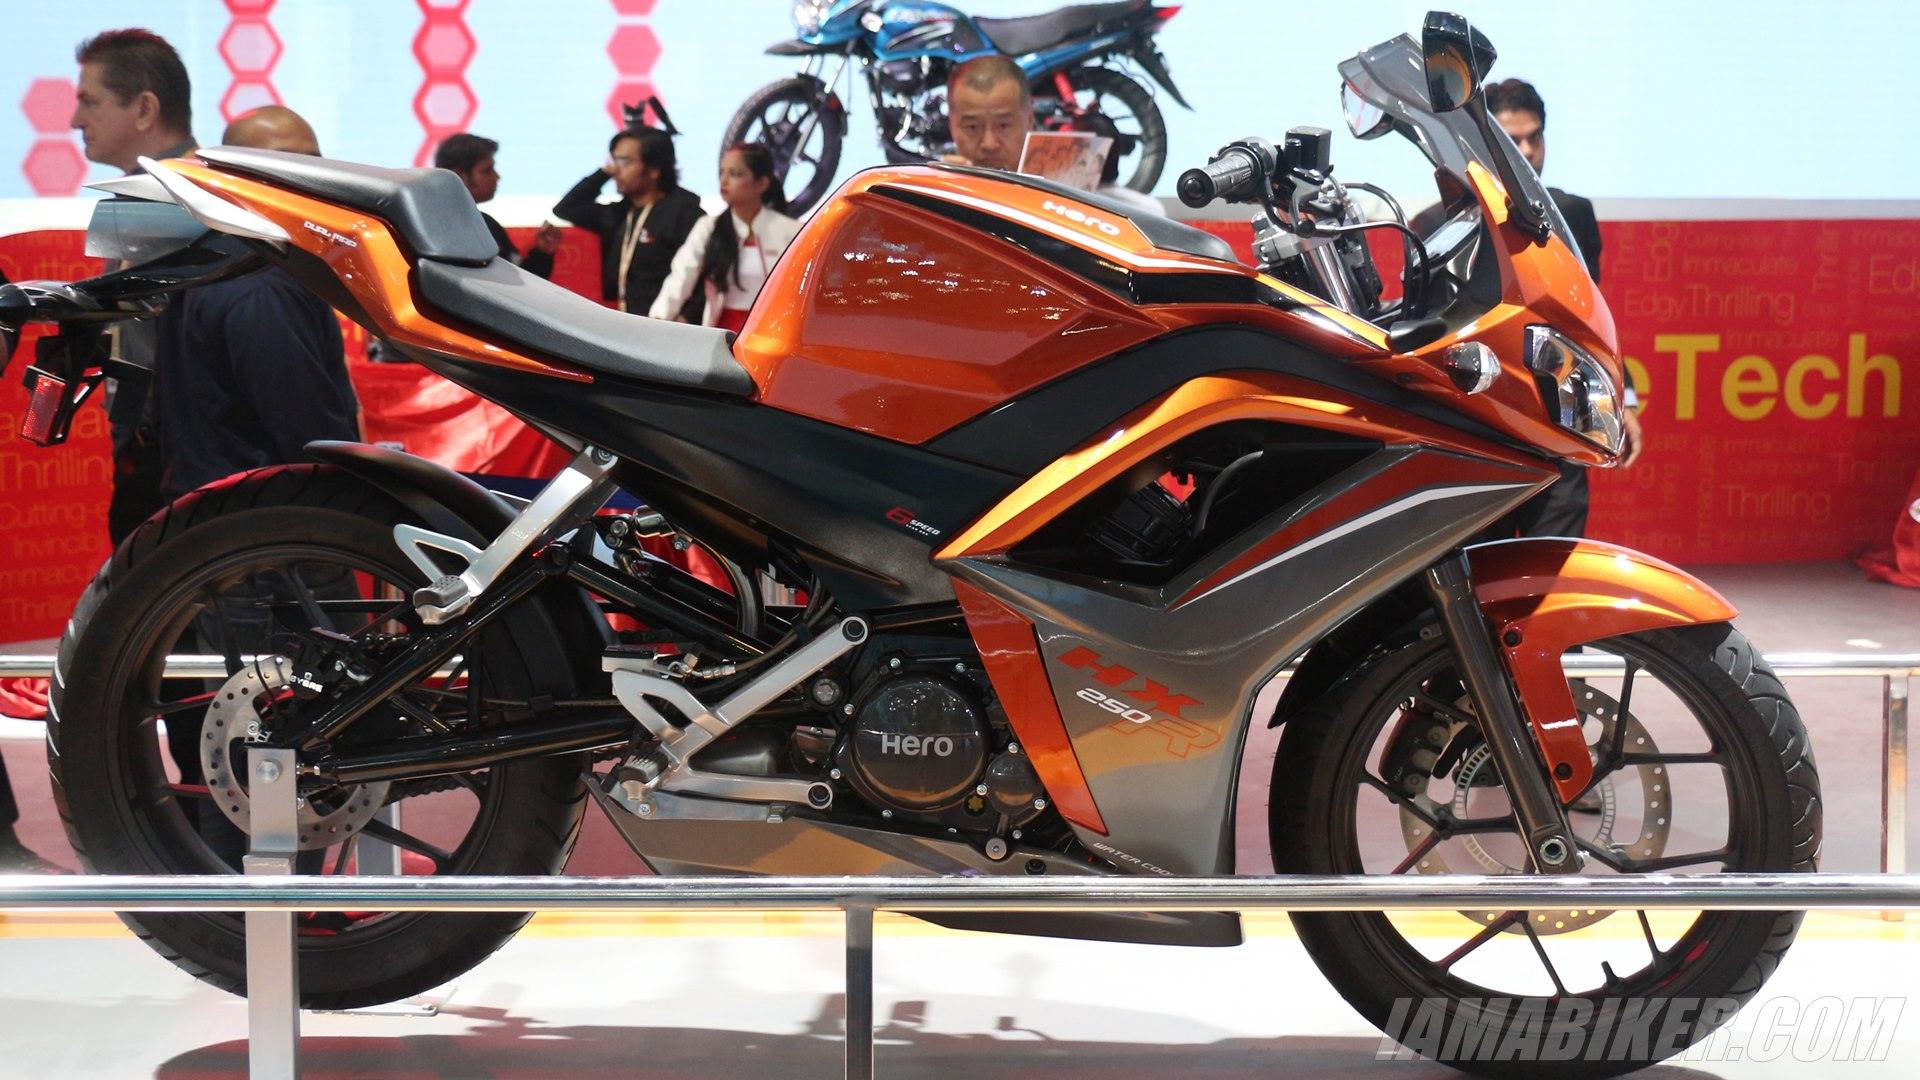 Hero HX250R at Auto Expo 2014